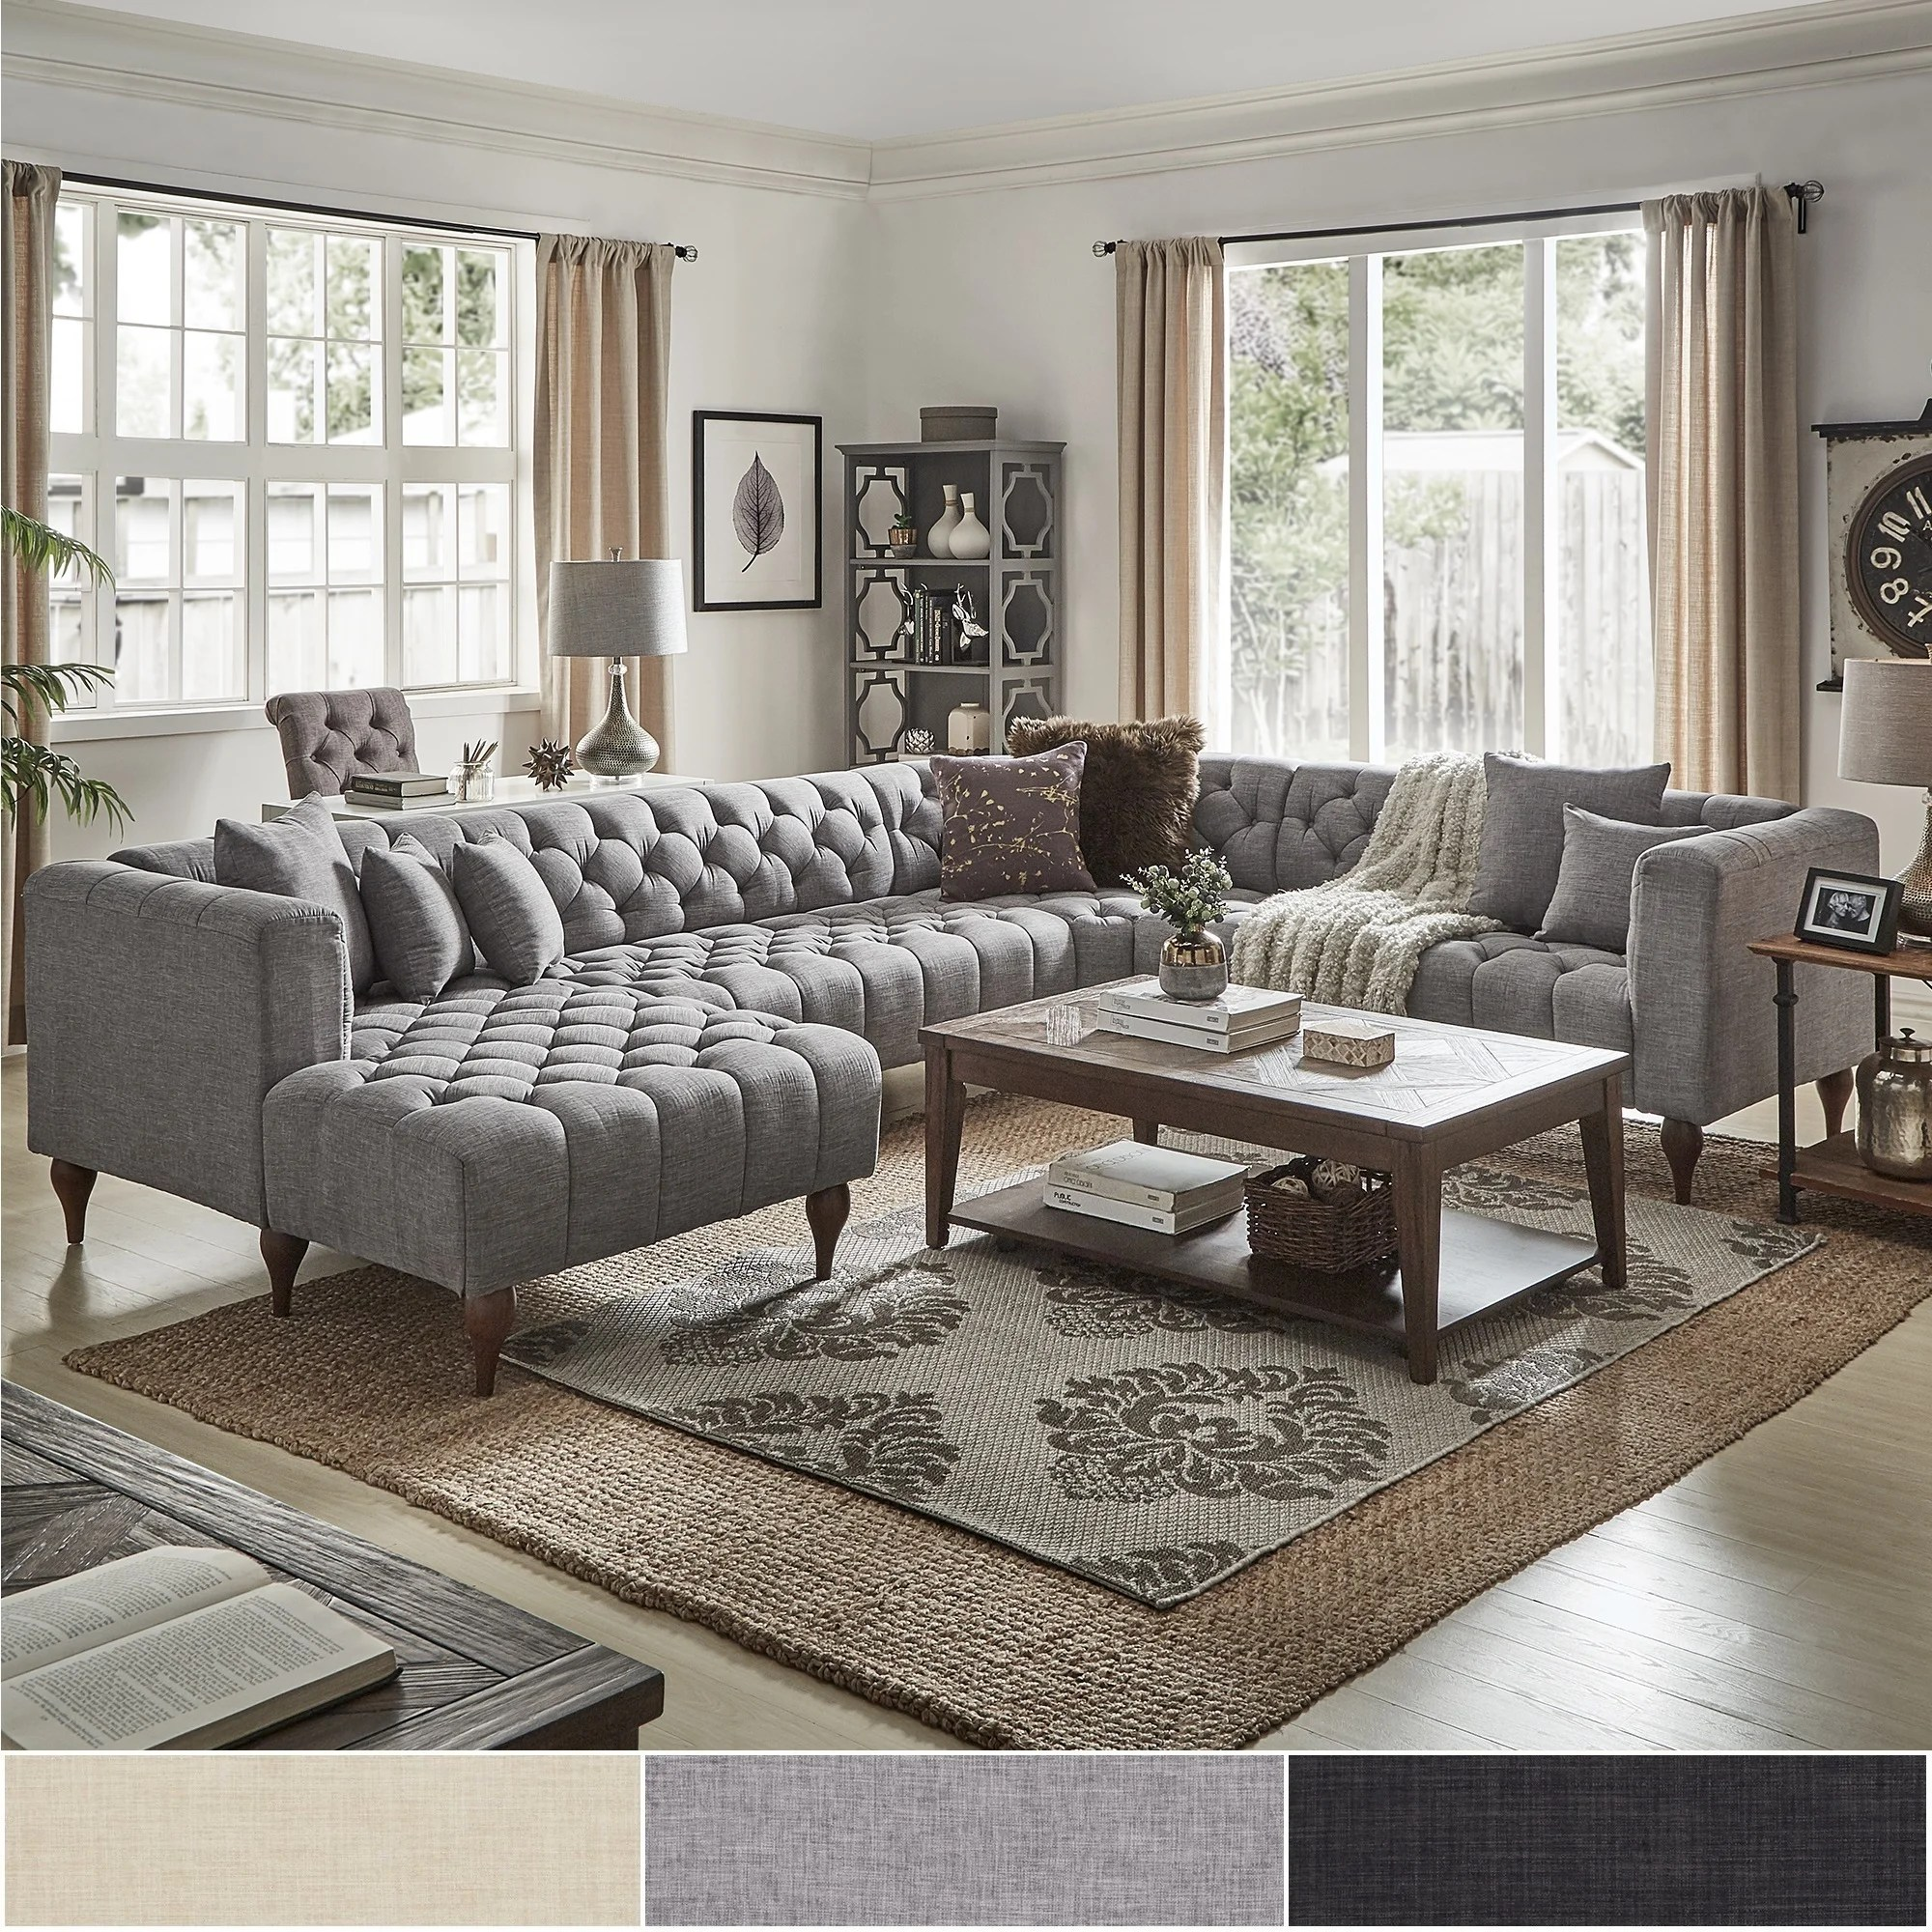 danise tufted linen upholstered tuxedo arm u shaped sectional with chaise by inspire q artisan